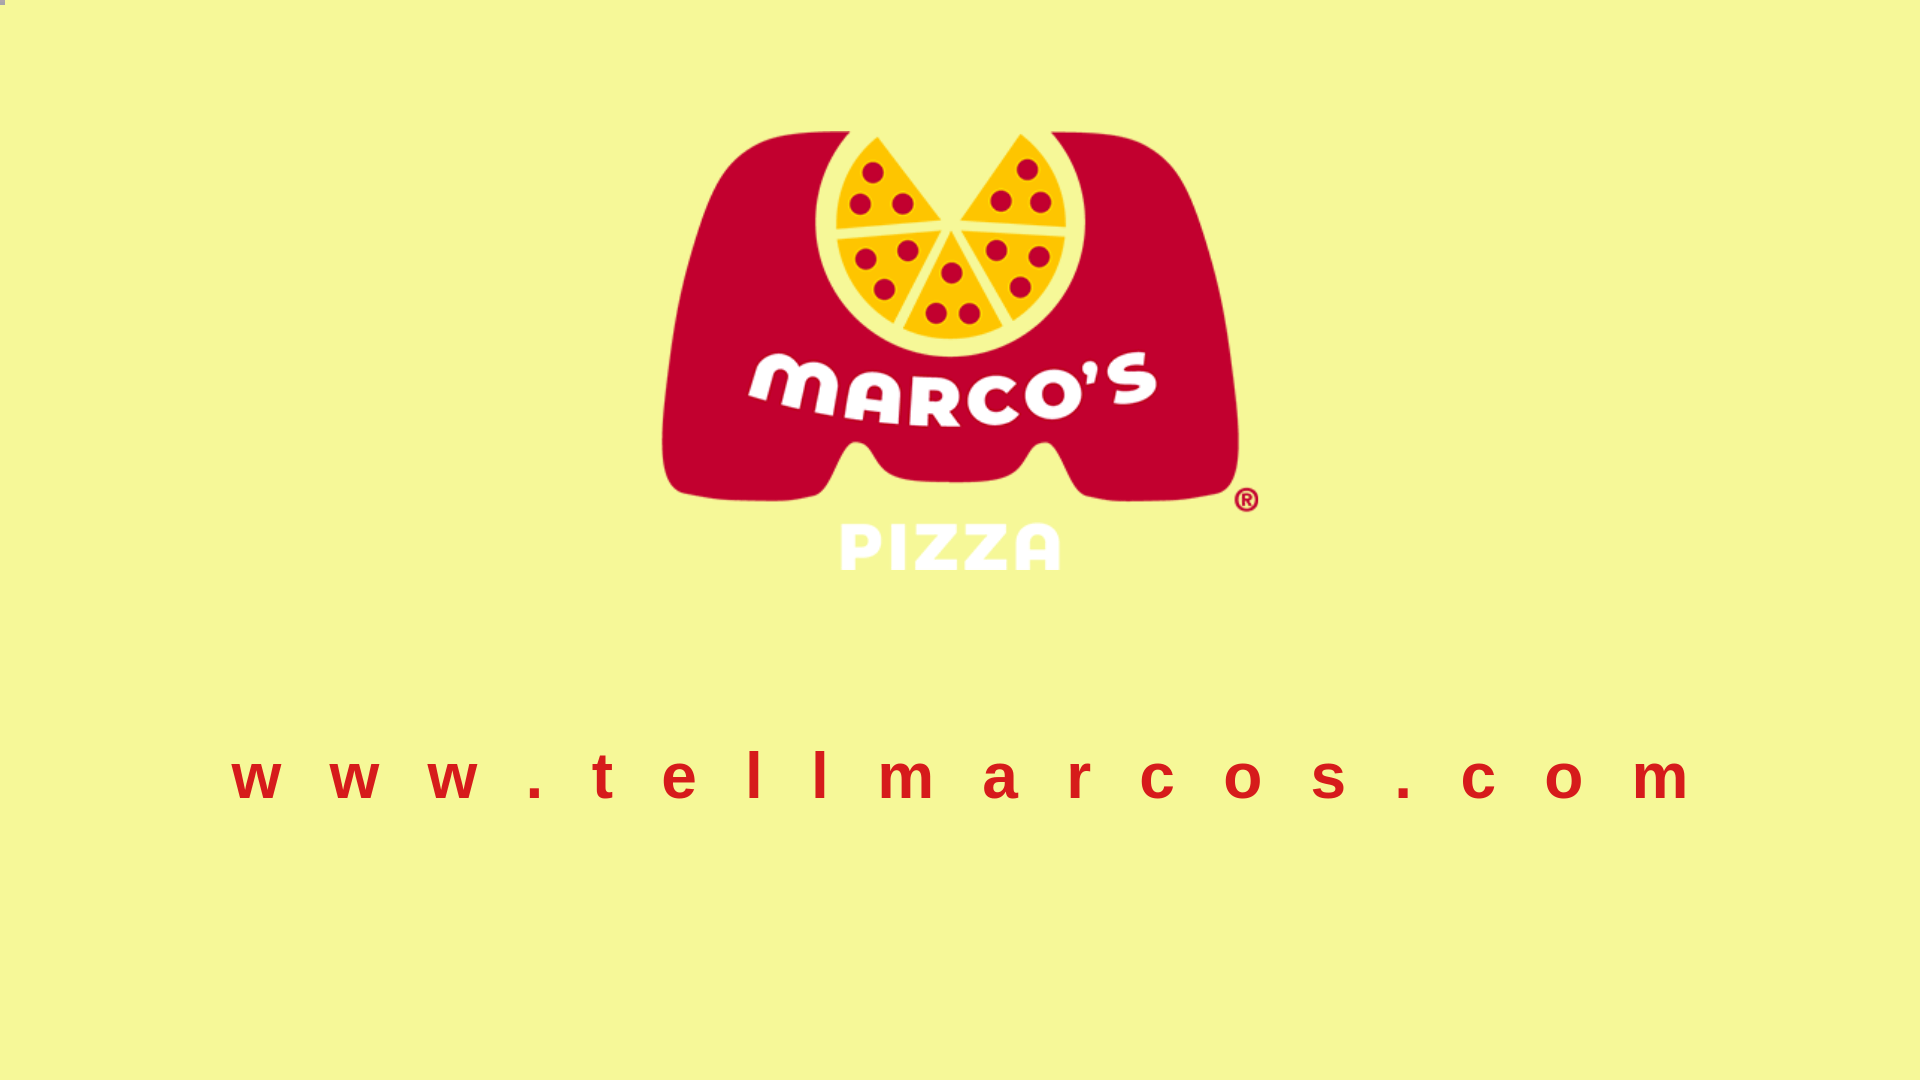 TellMarcos | Take TellMarcos Survey | Get Free Pizza Coupon🍕